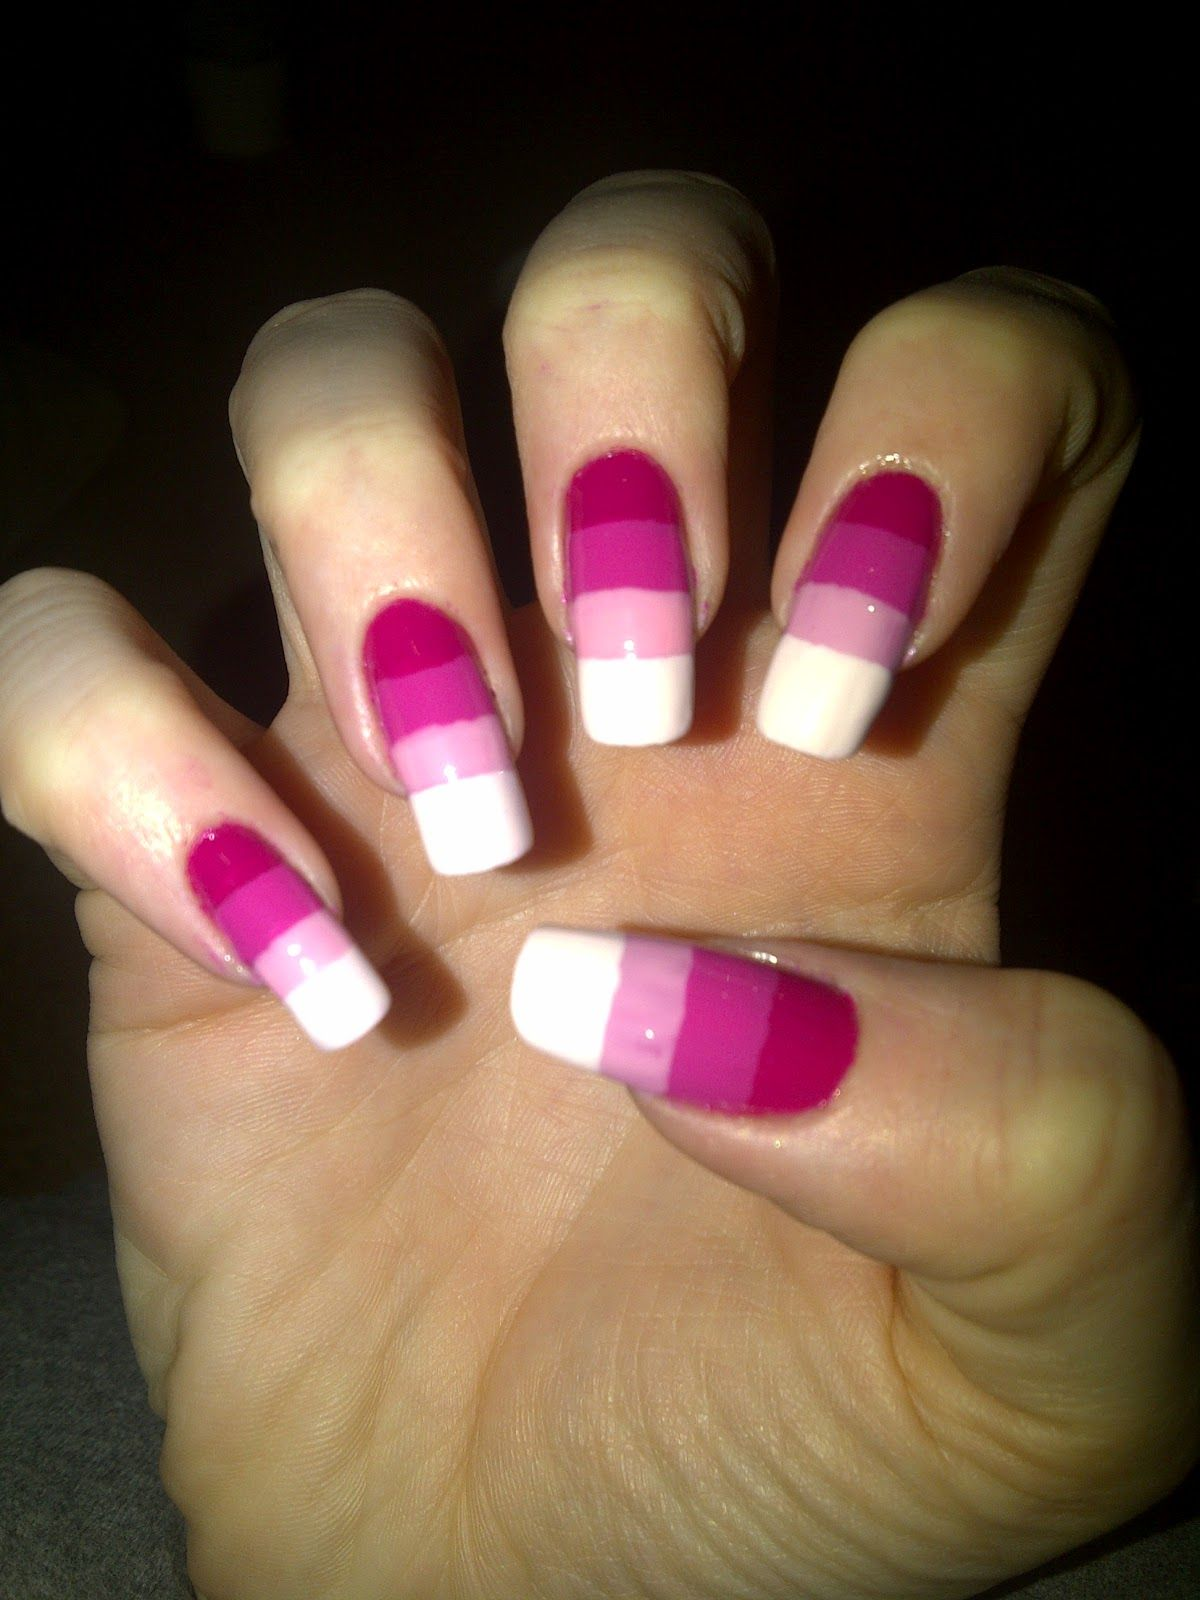 Too long but nice color | nails by Linda Evans | Pinterest